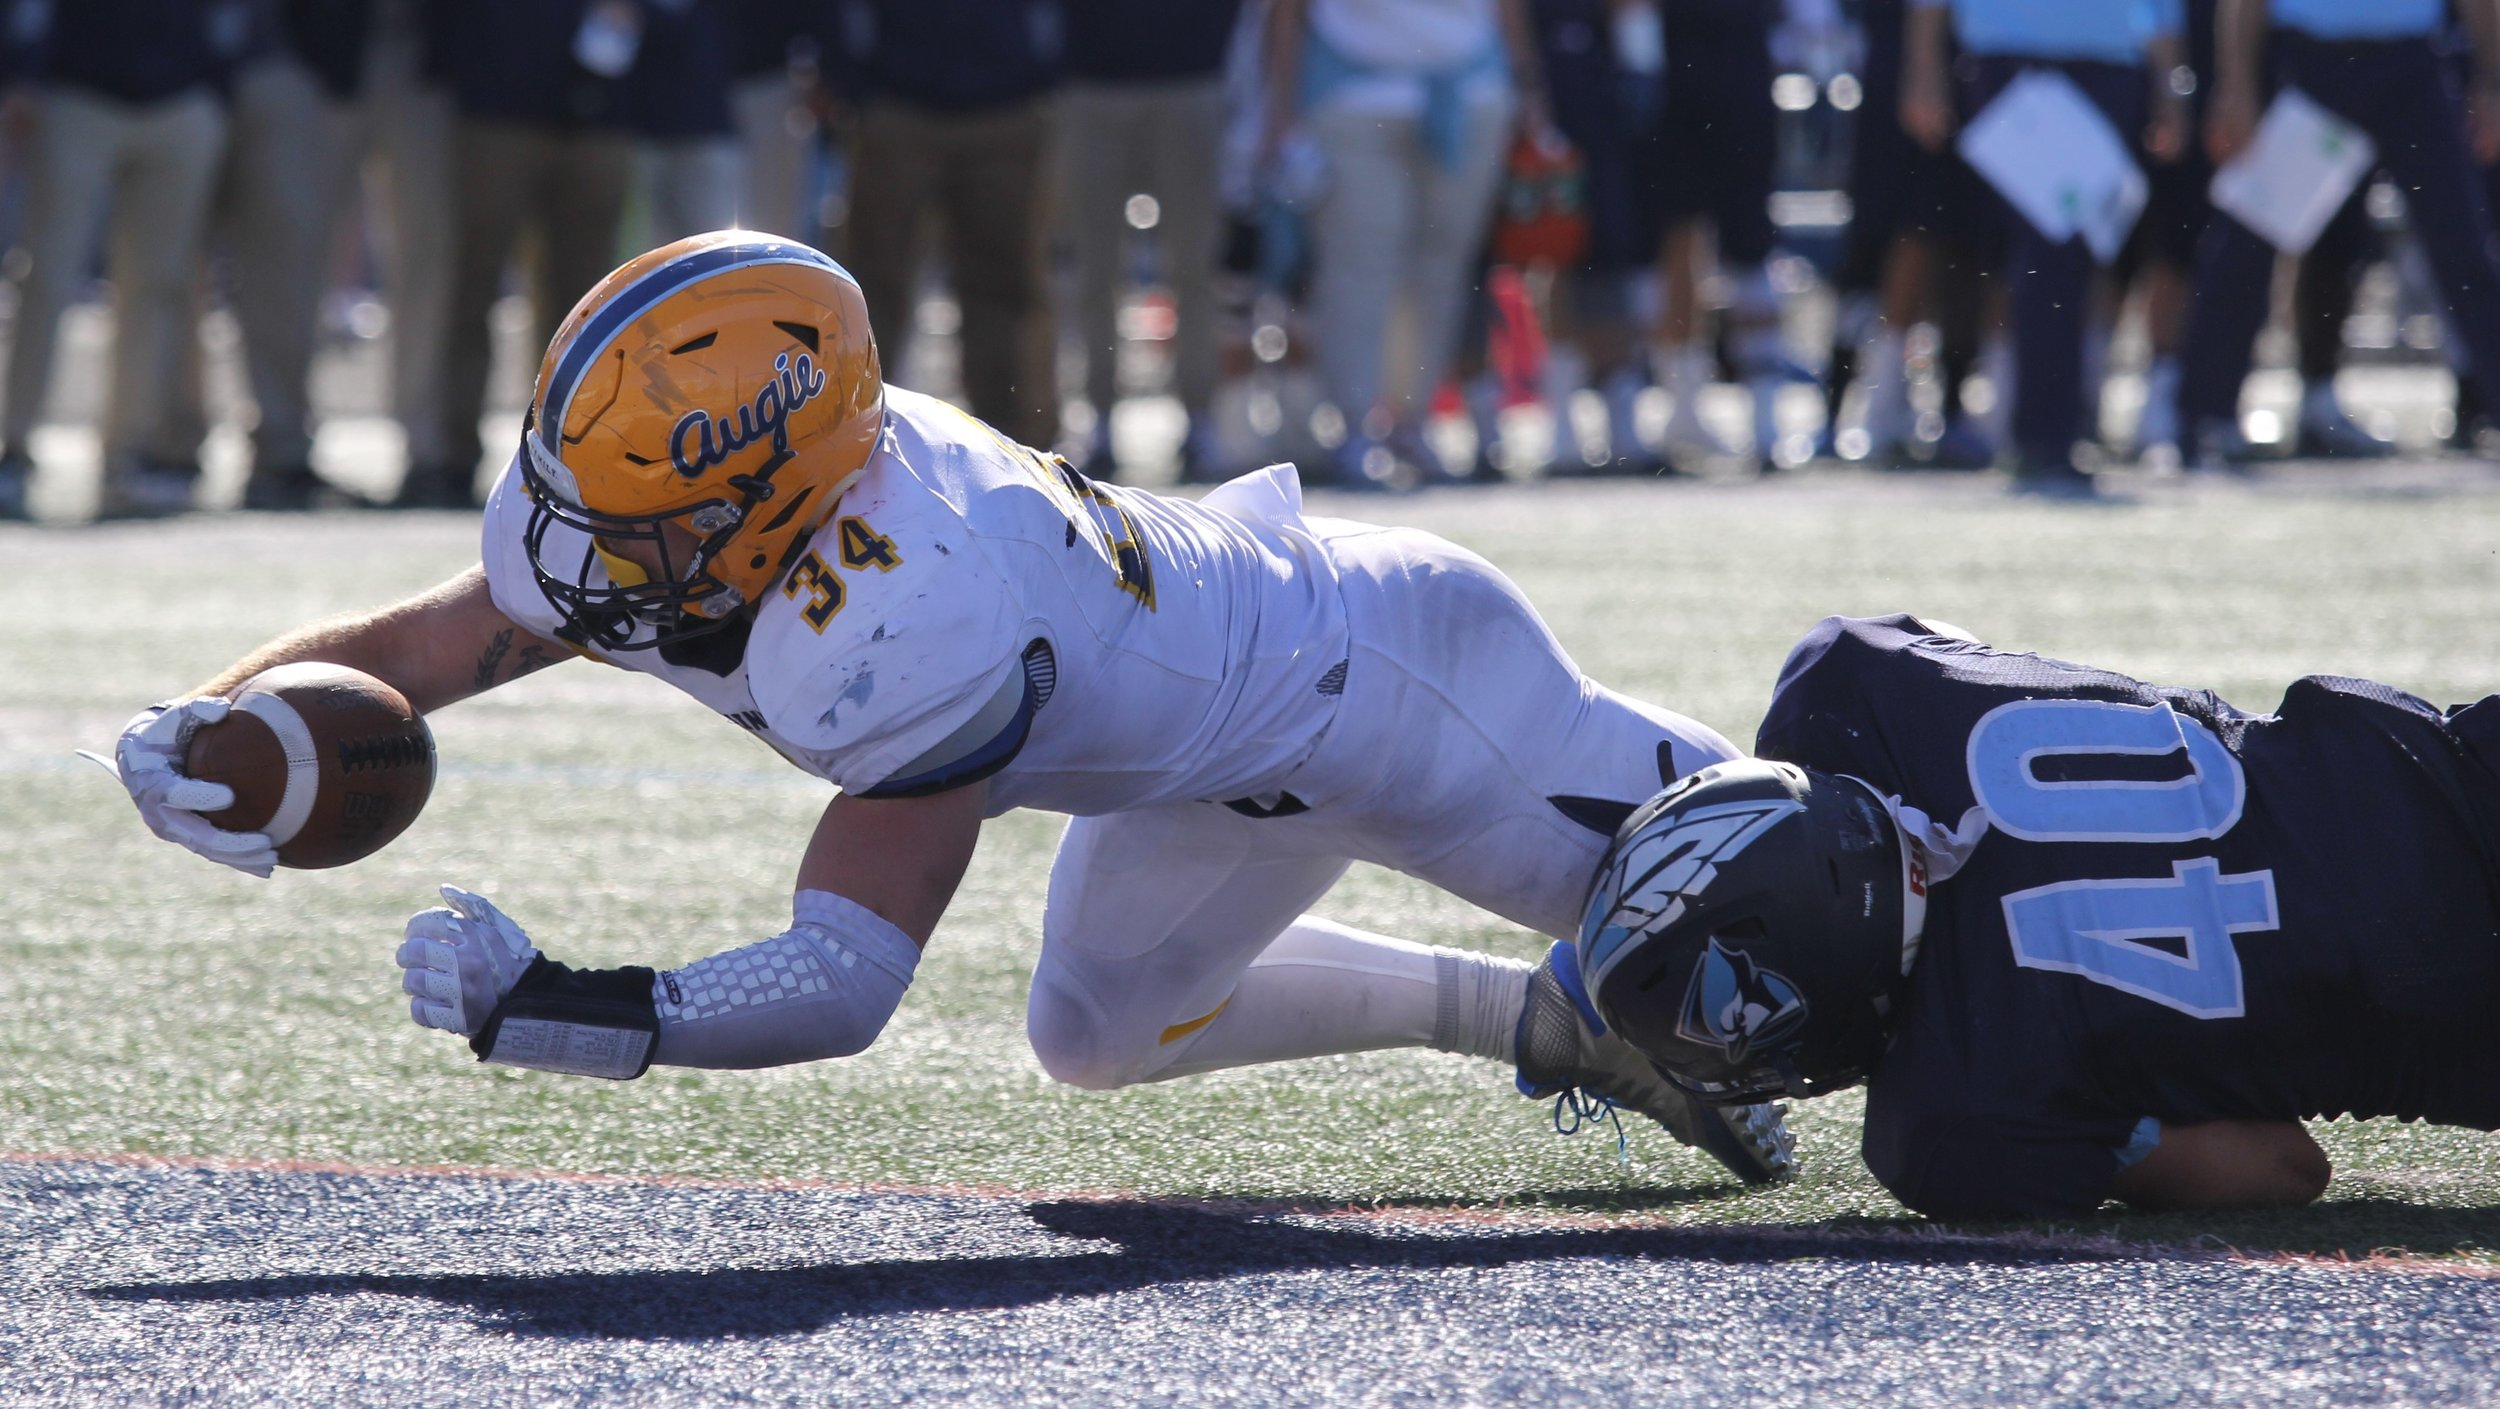 Augustana junior running back Ryan Pitra scores a touchdown with 1:21 remaining against the Bluejays at Langhorst Field on Sept. 30.  Photo by Cole Sheeks